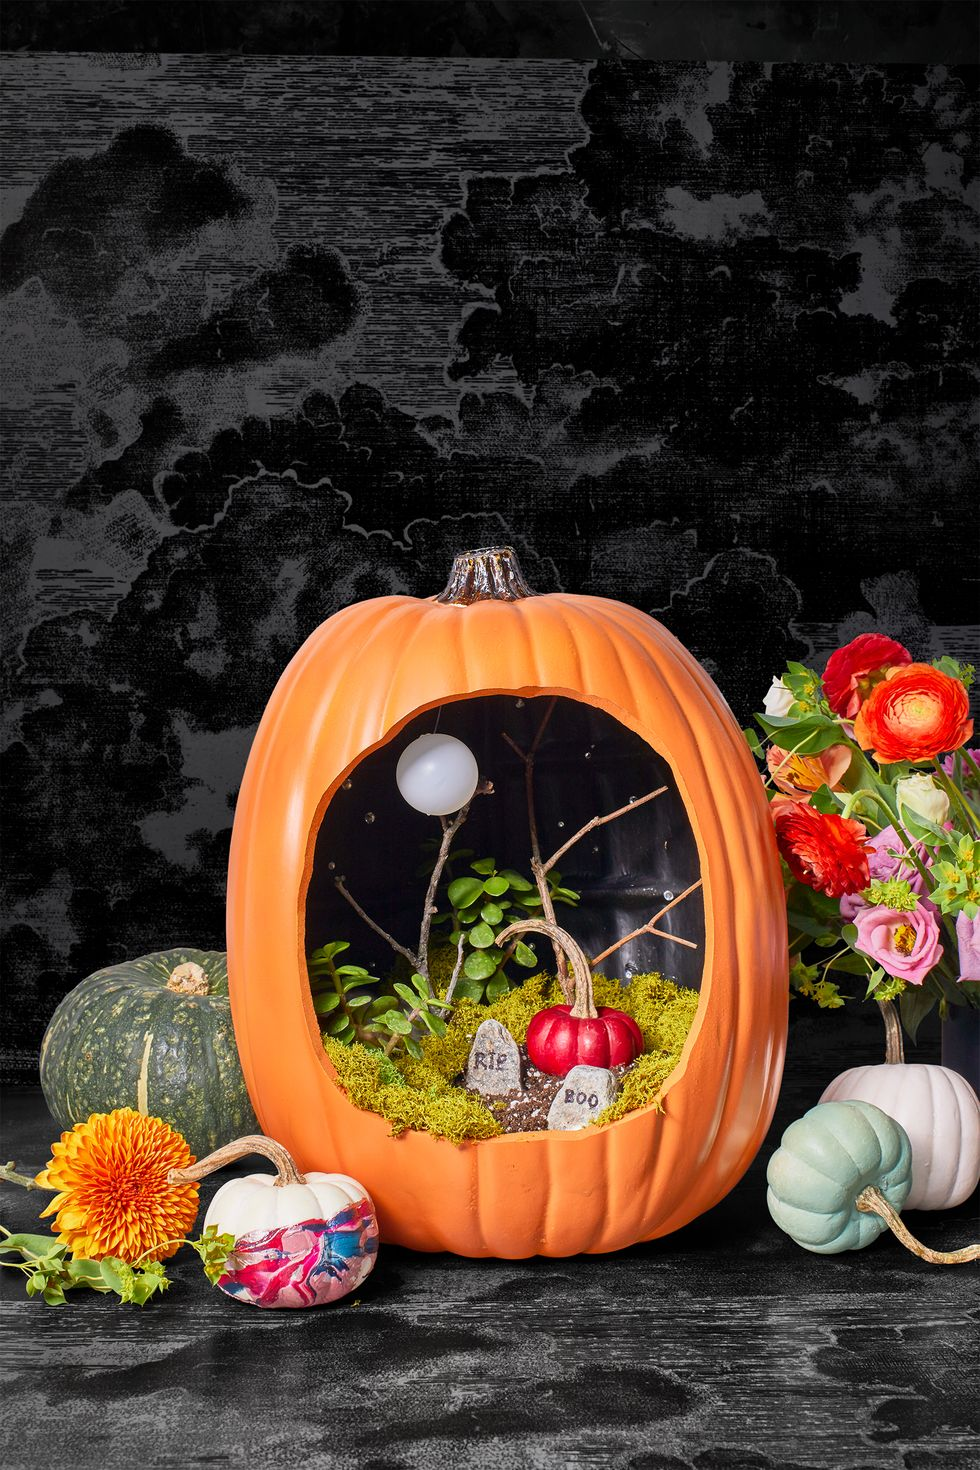 55 Fun Pumpkin Carving Ideas to Put Your Creativity to the Test